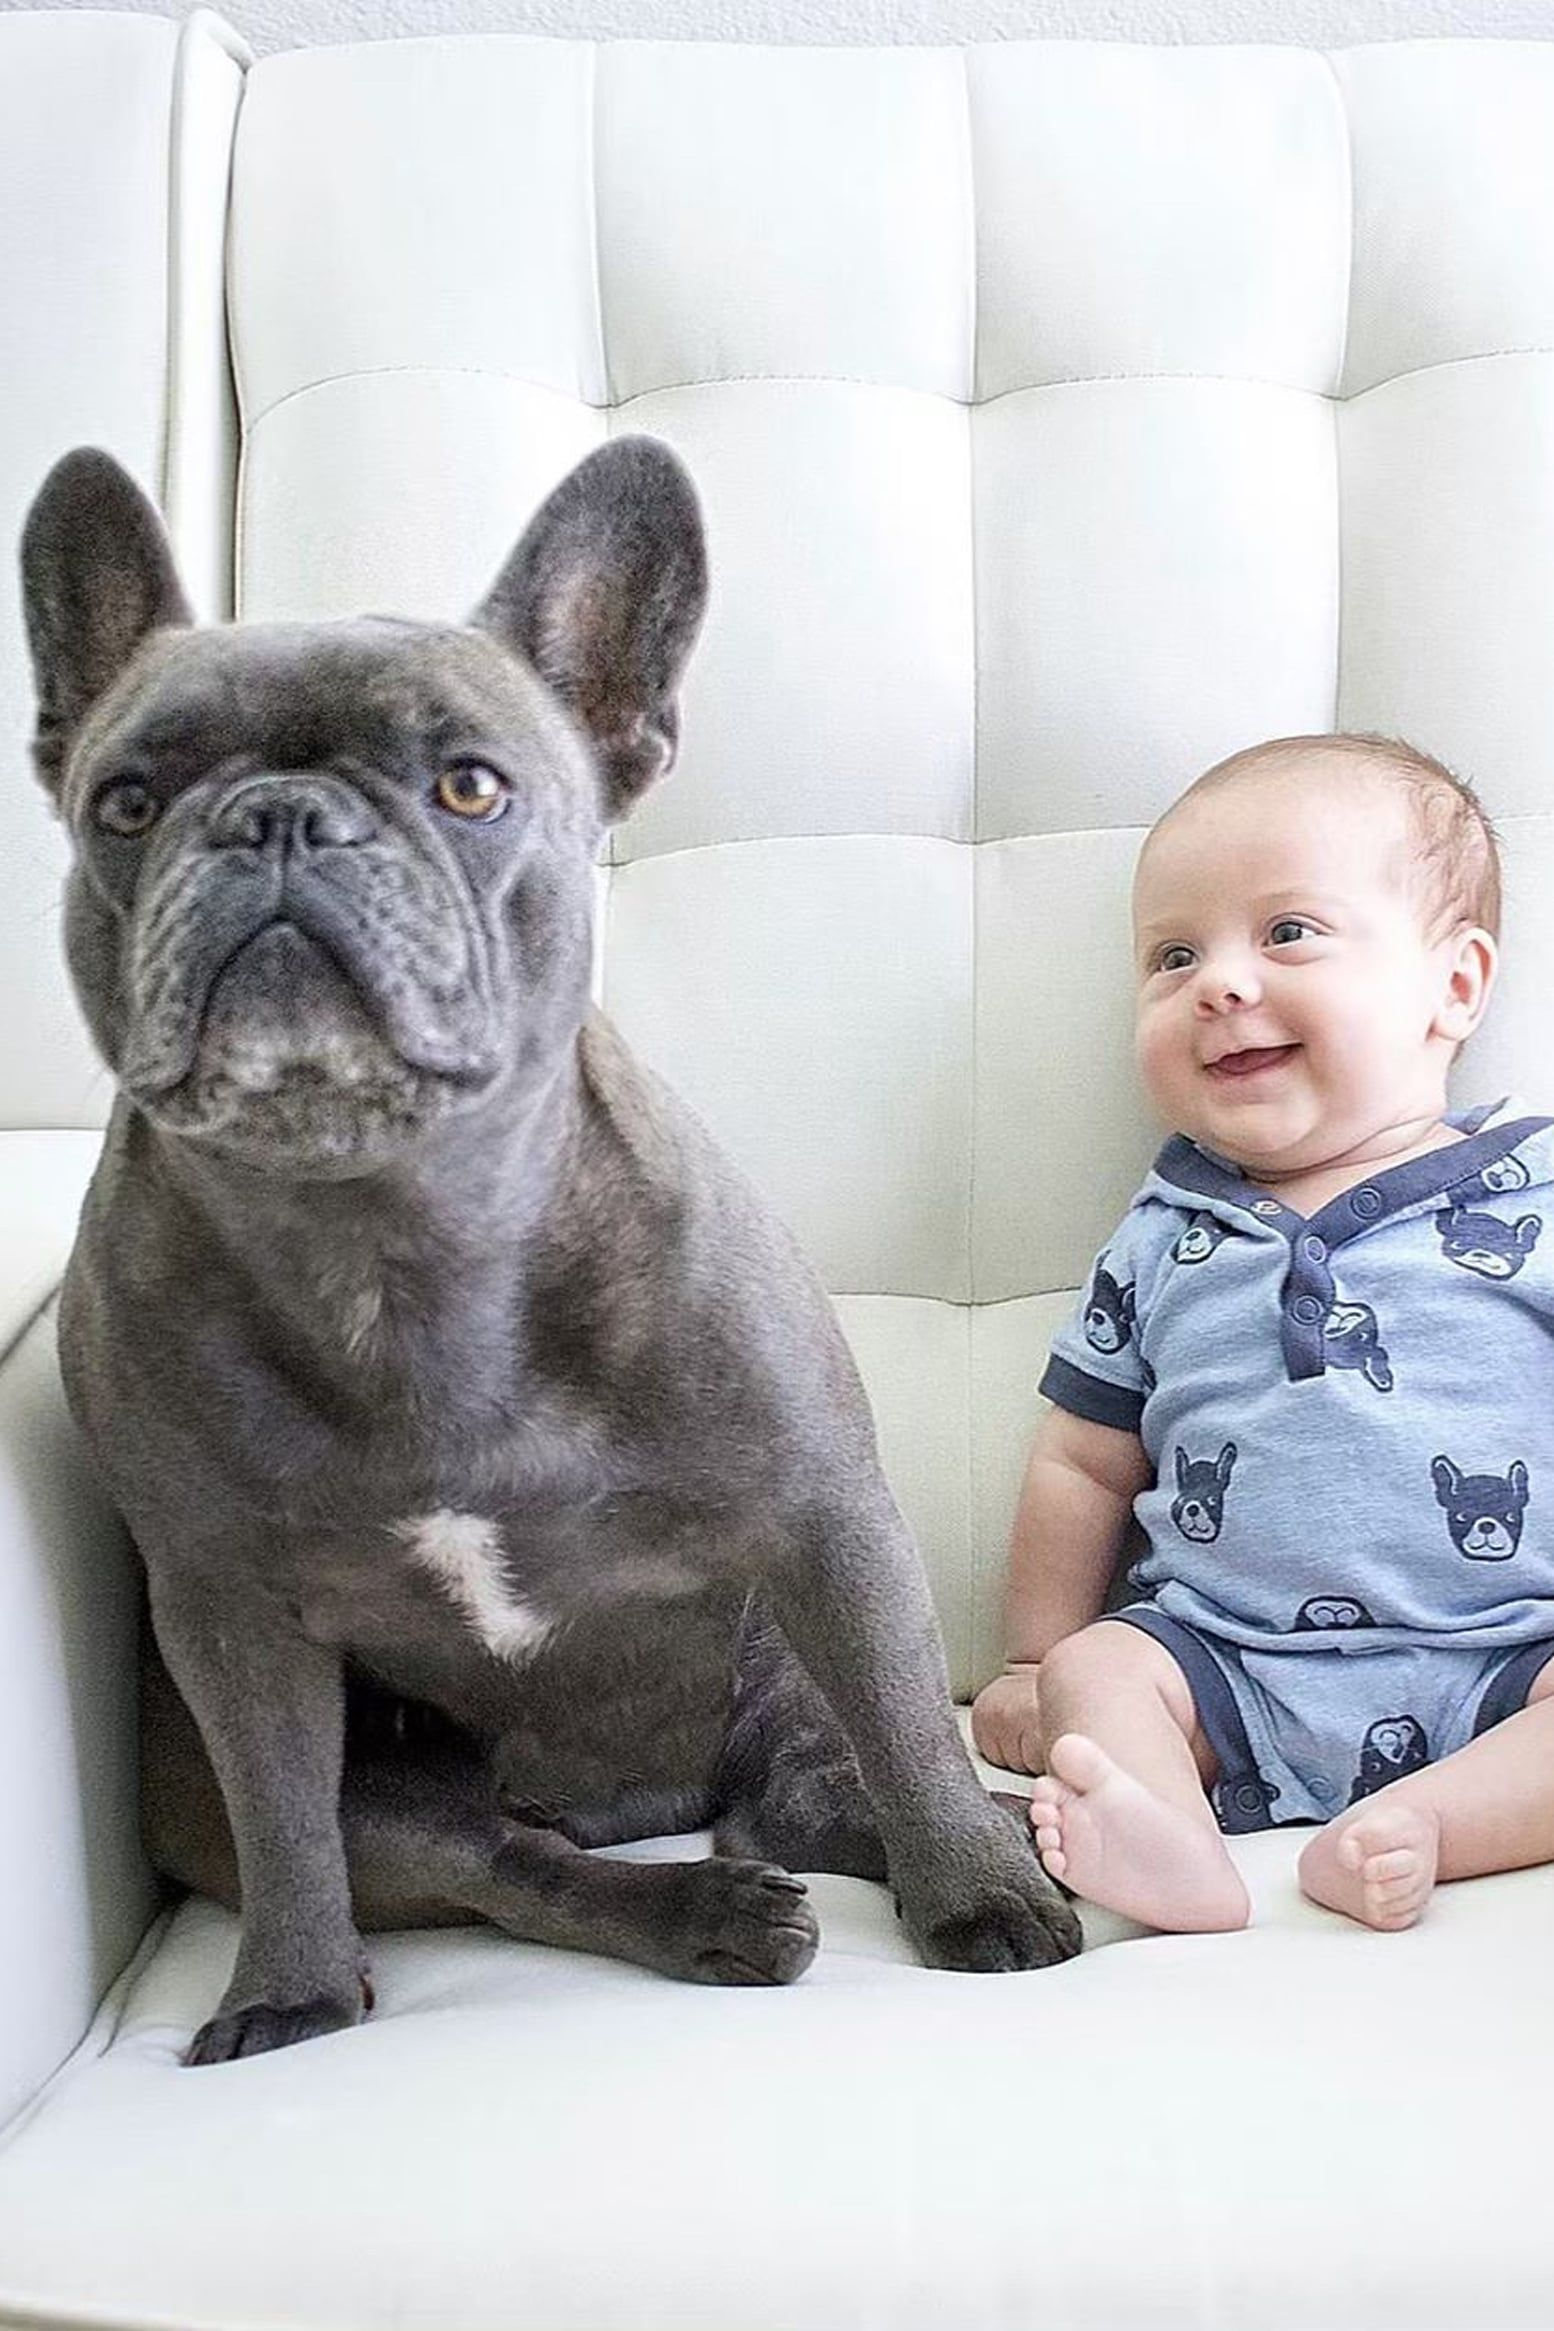 24 Photos Of Frenchies With Babies That Will Cause You To Squeal